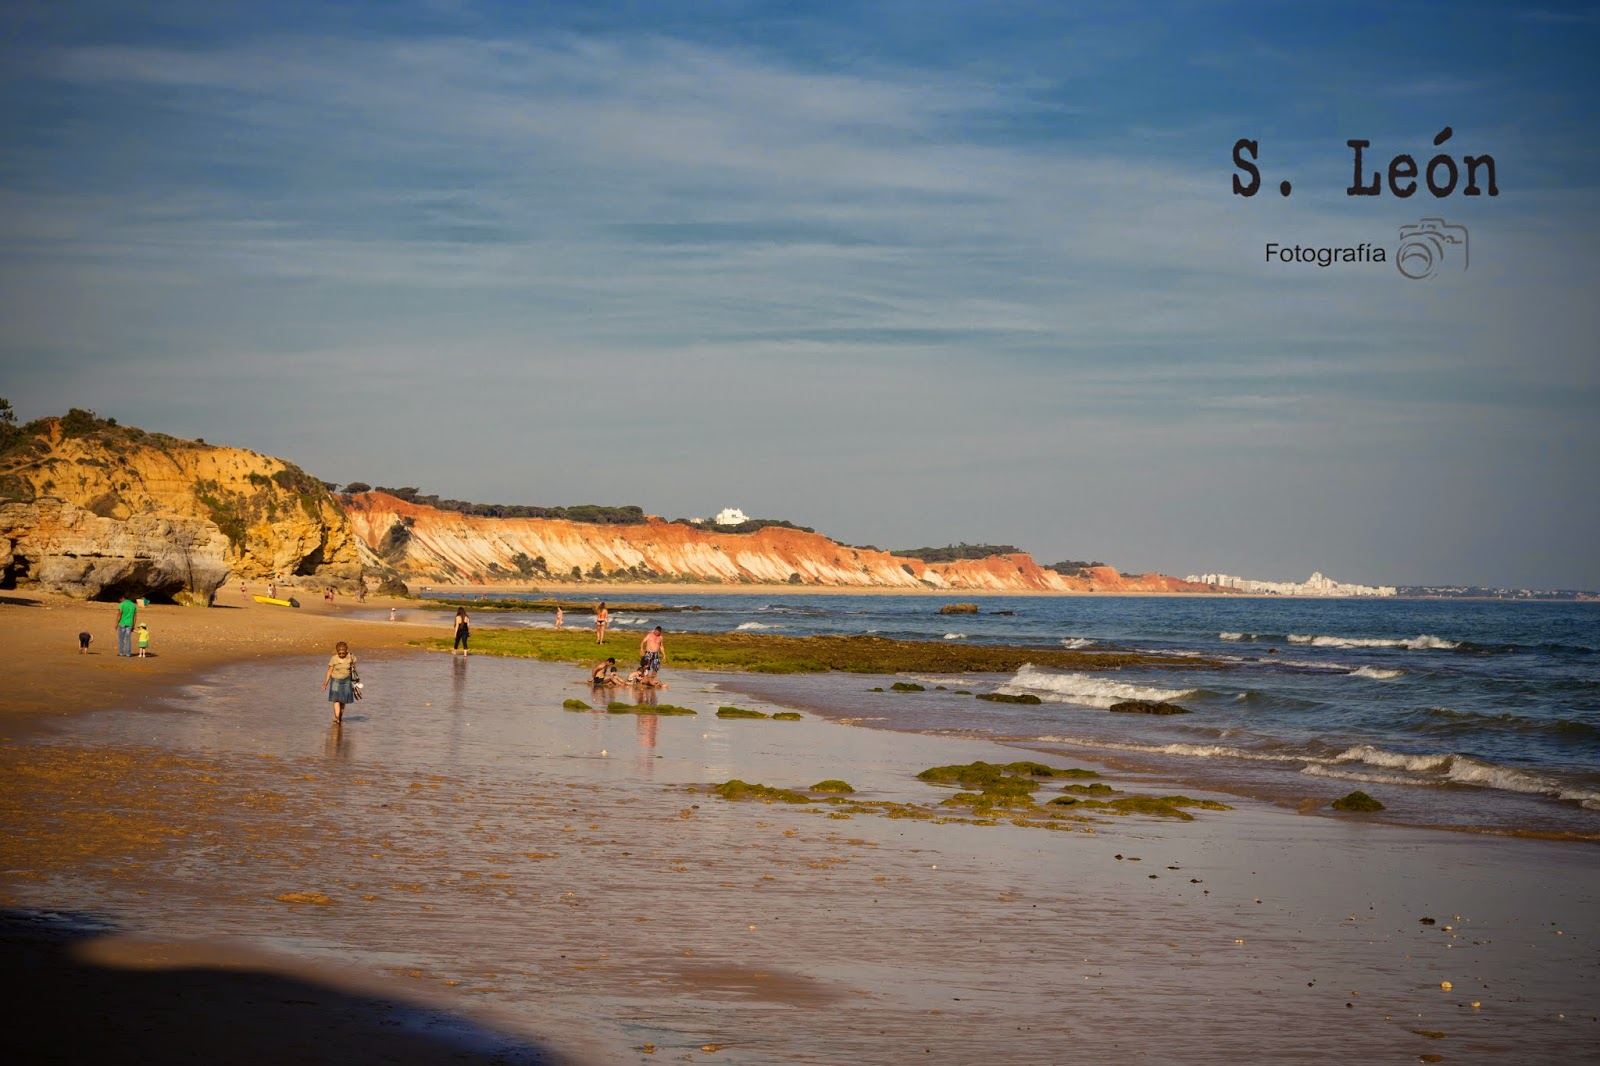 albufeira hindu personals The cheapest way to get from albufeira to santander costs only $81, and the quickest way takes just 6½ hours find the travel option that best suits you.